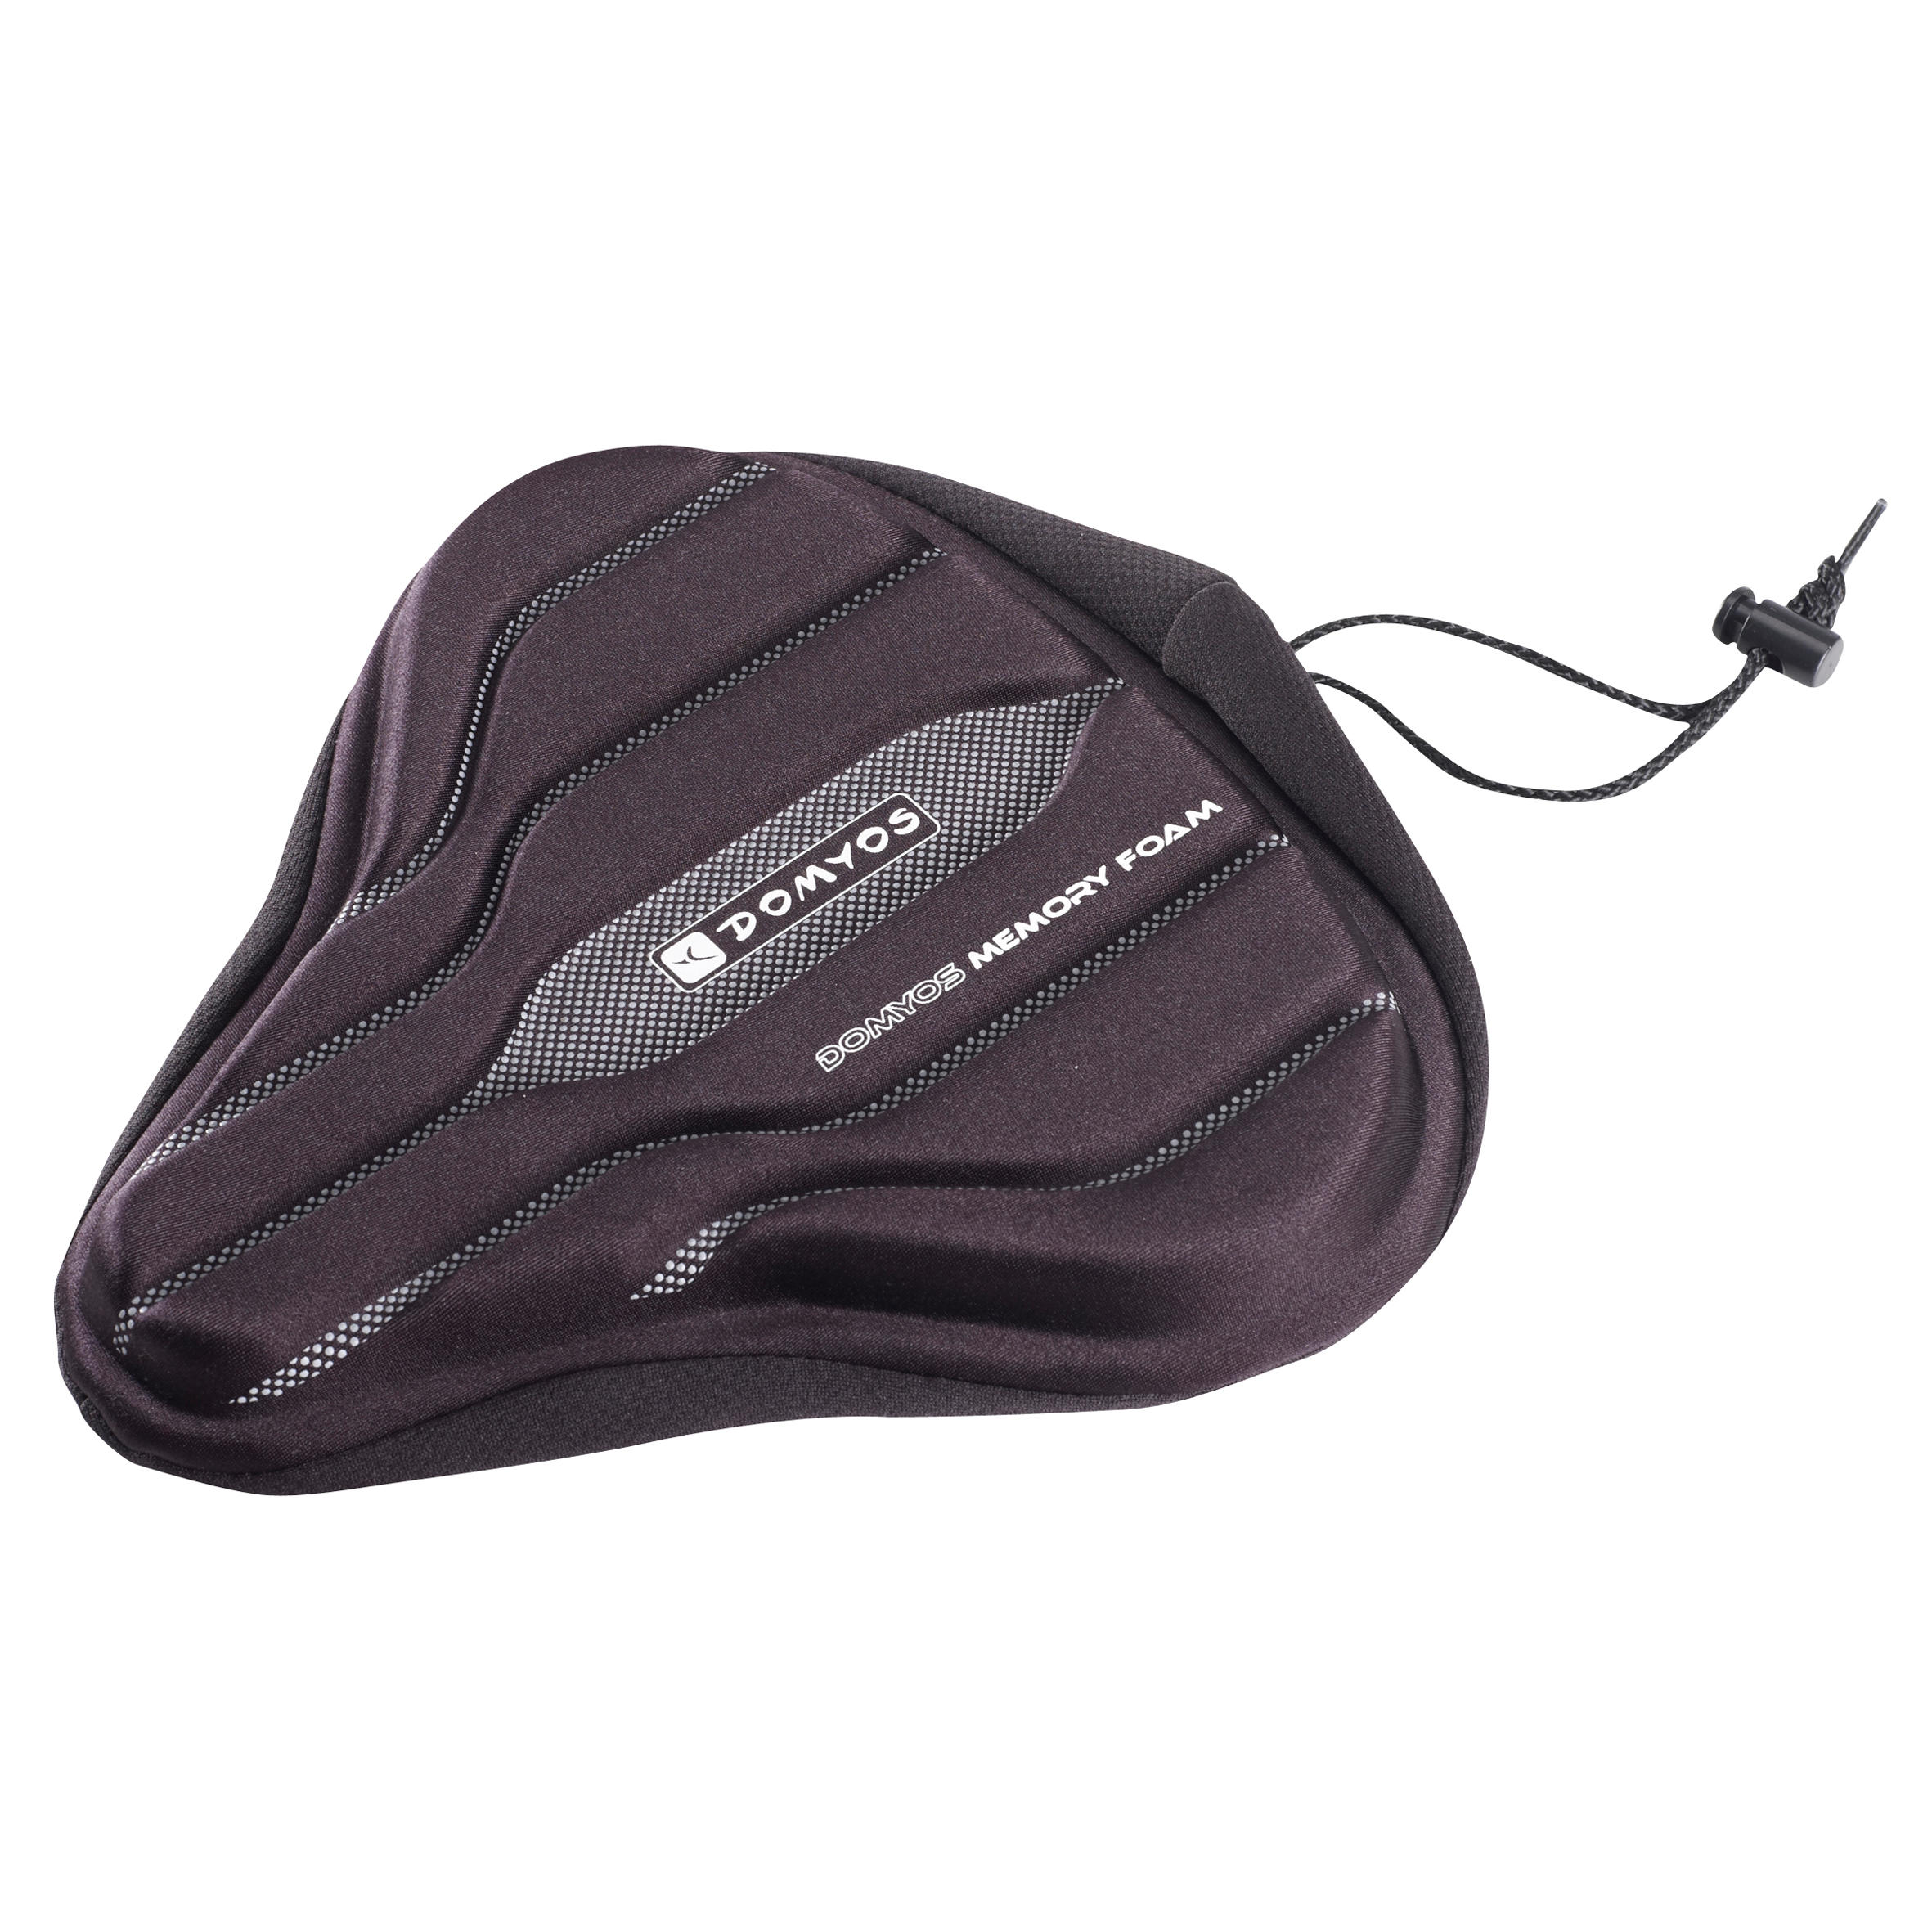 Saddle Cover for Home Exercise Bike